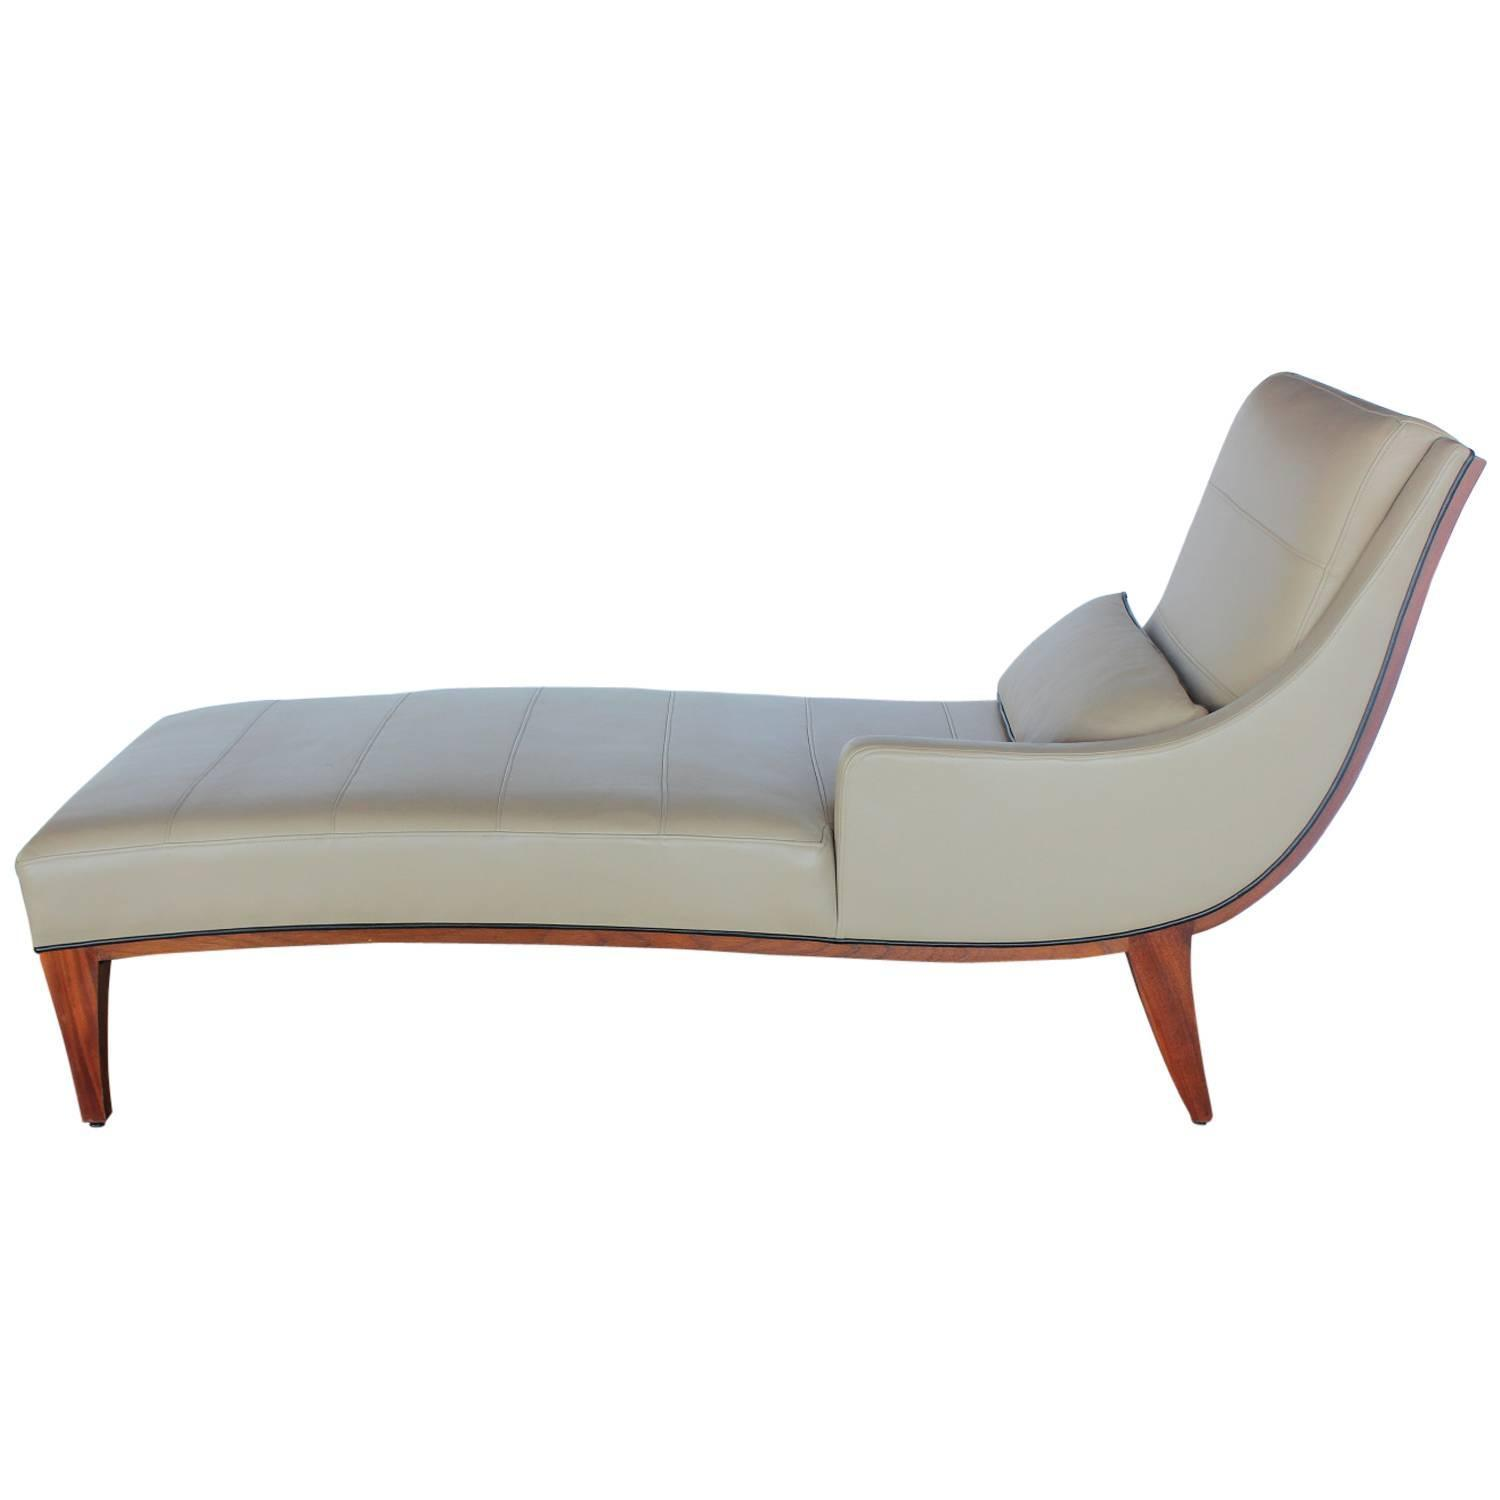 Modern Chaise Lounge Modern Leather Chaise Lounge By Widdicomb For Sale At 1stdibs